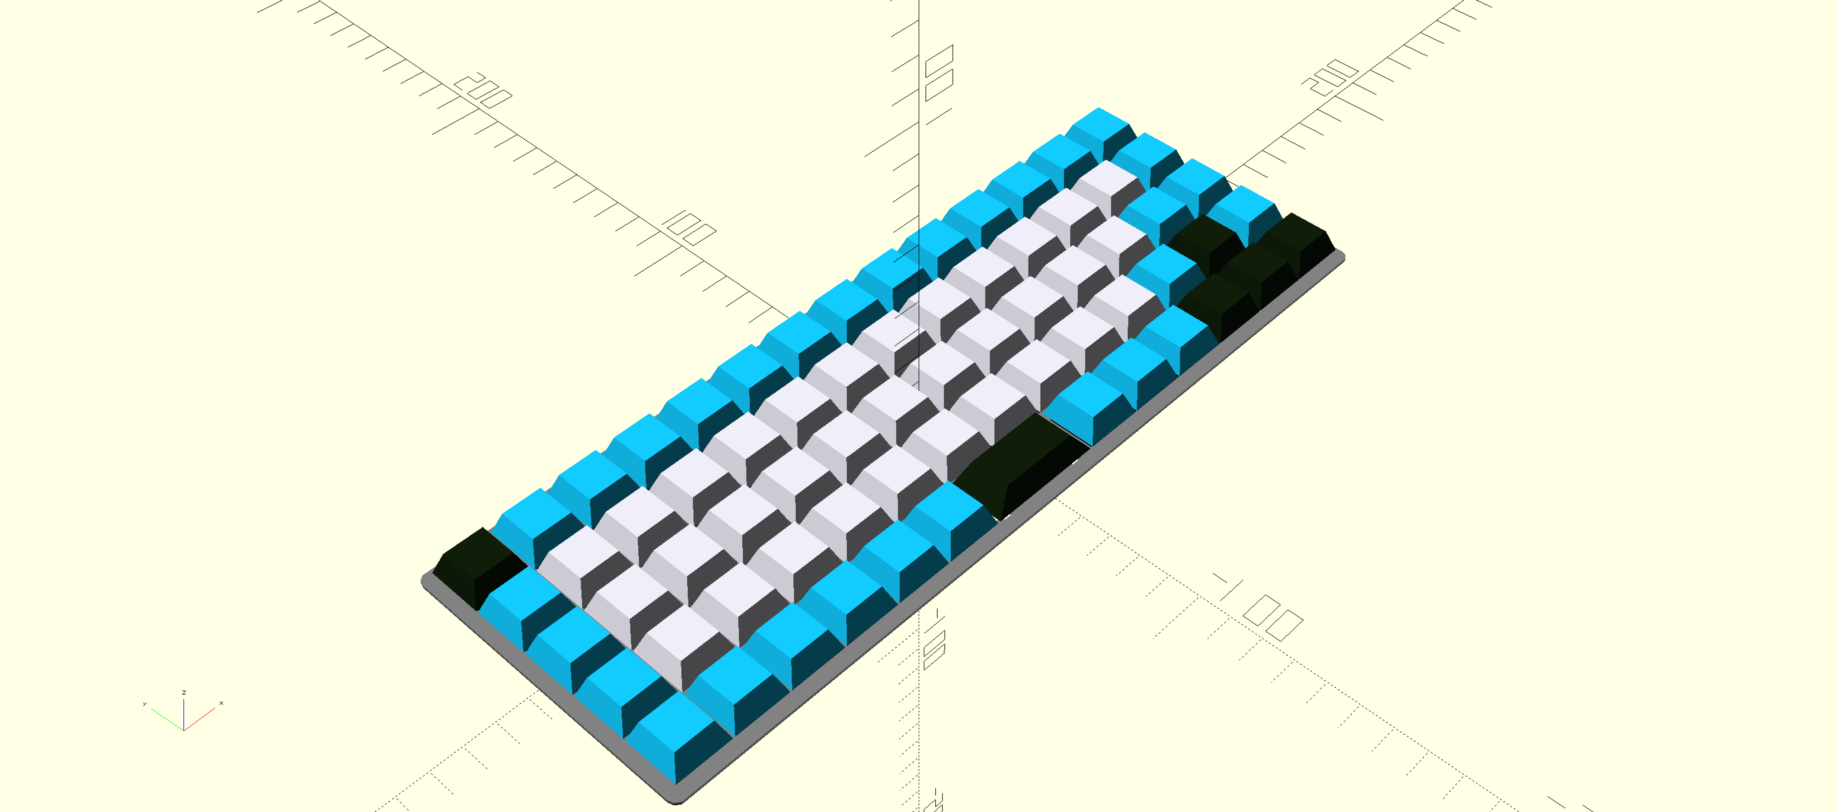 One Man's Quest to Build the Ultimate Custom USB Keyboard